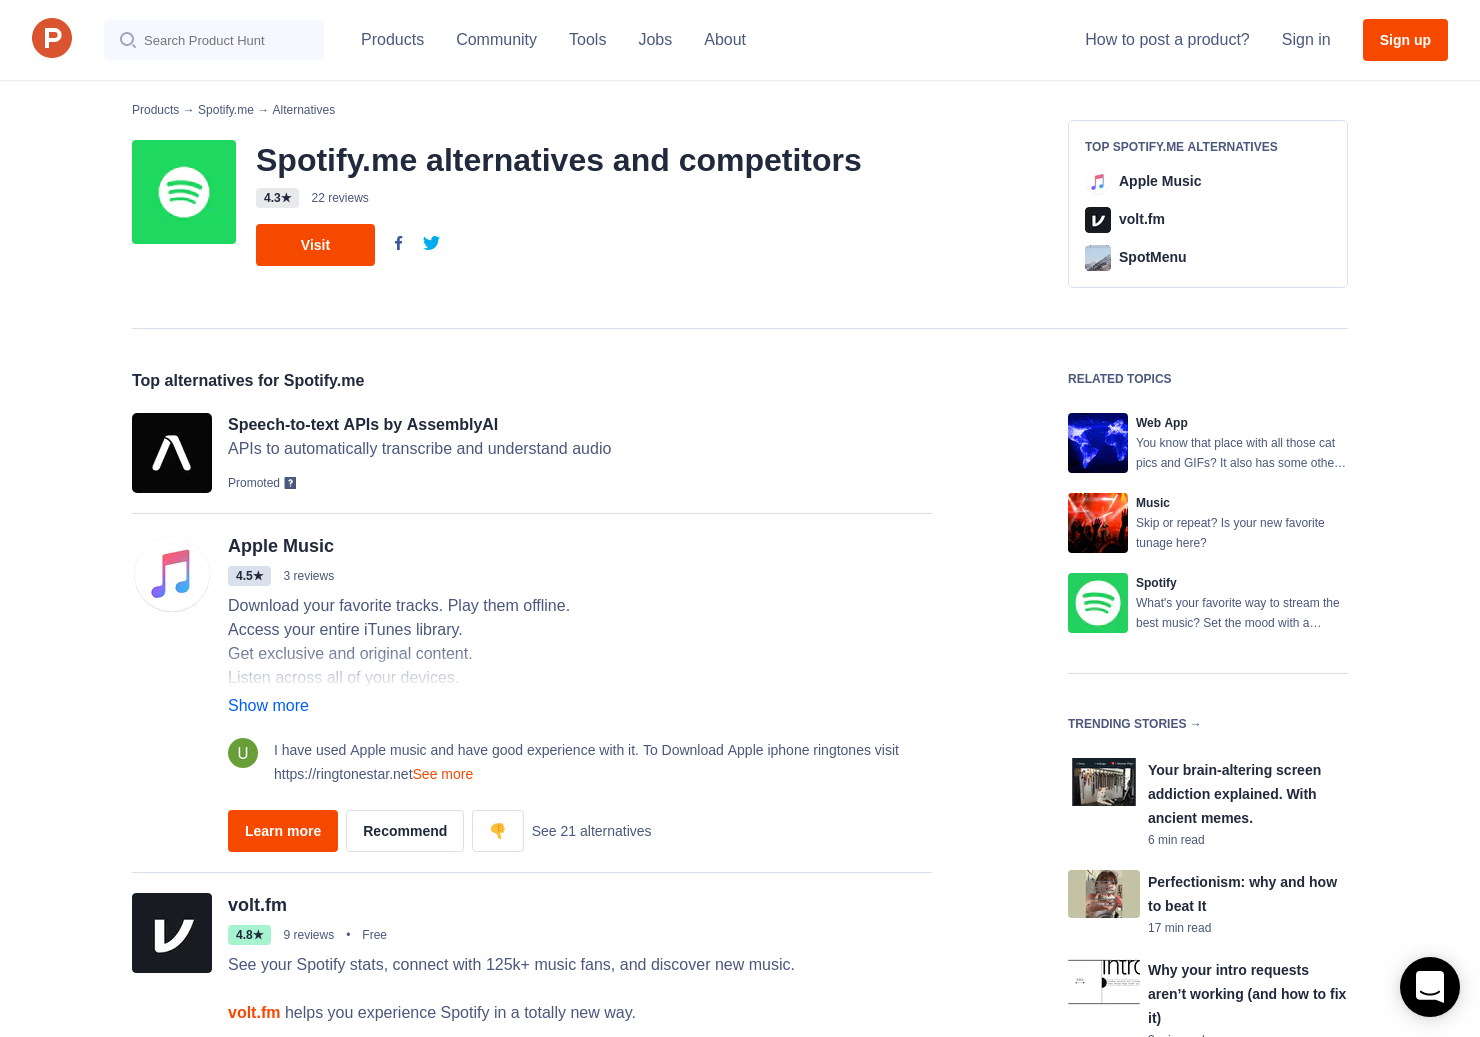 19 Alternatives to Spotify me | Product Hunt